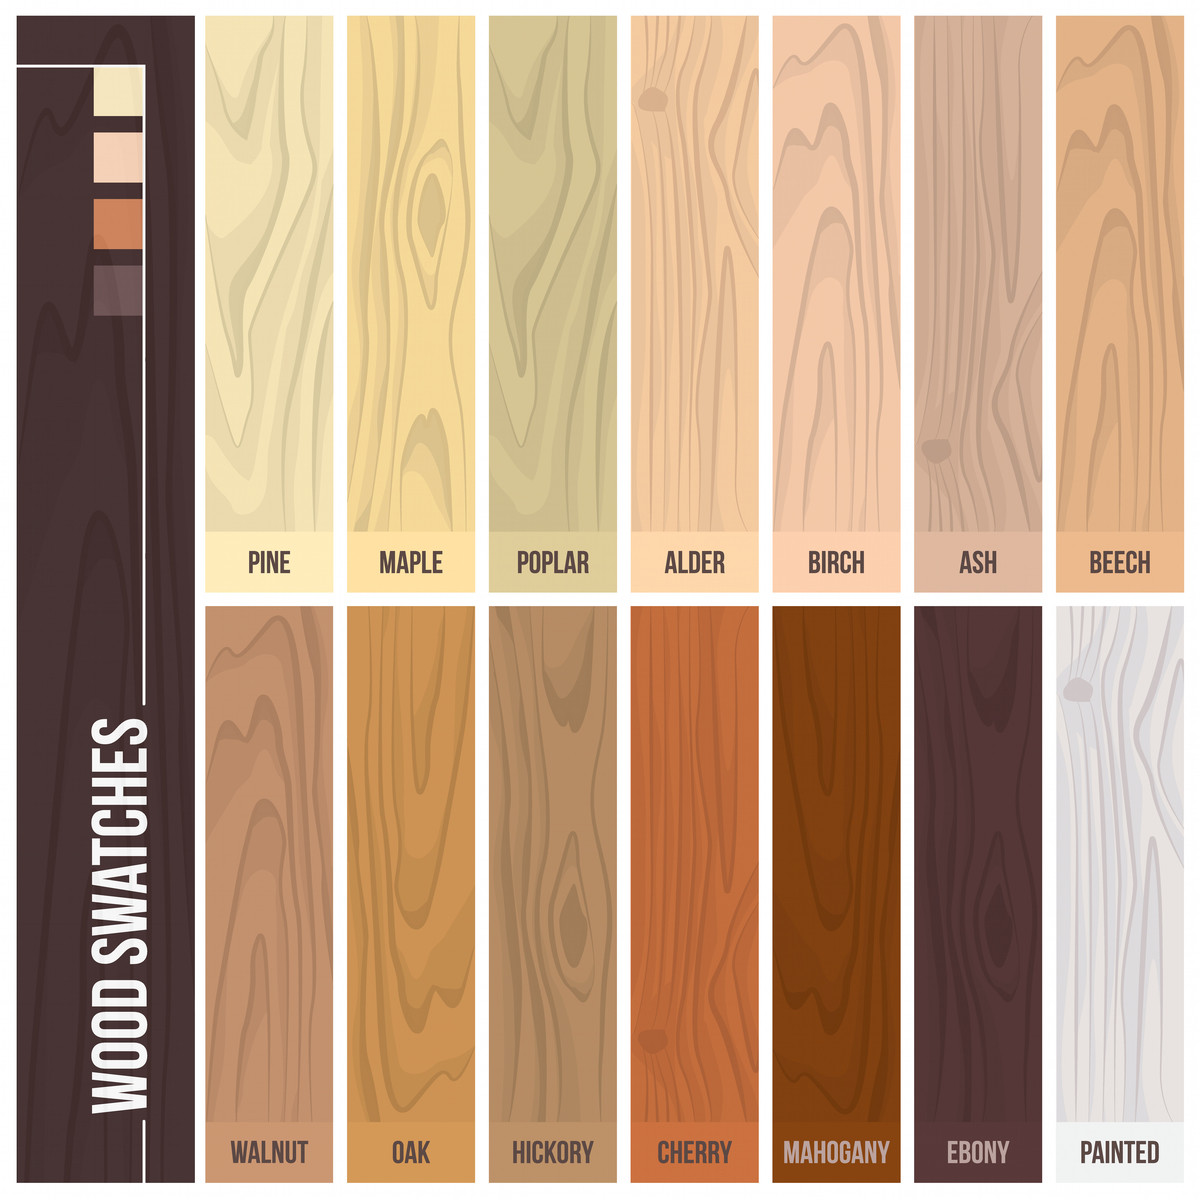 White Oak Grey Hardwood Flooring Of 12 Types Of Hardwood Flooring Species Styles Edging Dimensions Intended for Types Of Hardwood Flooring Illustrated Guide